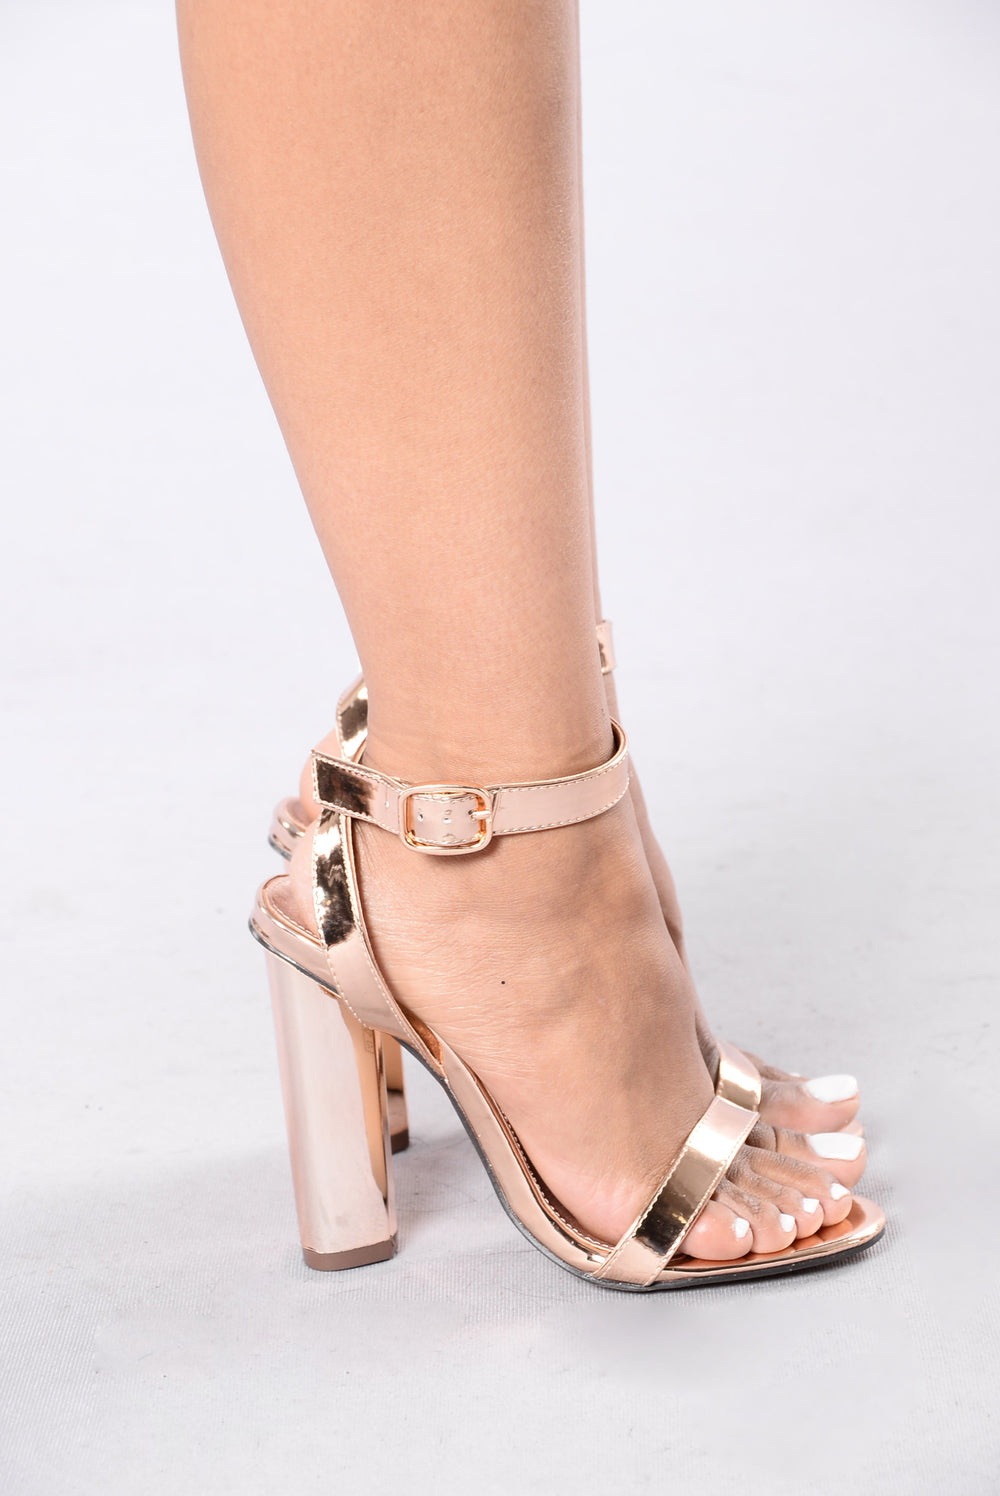 Simple And Sleek Heel